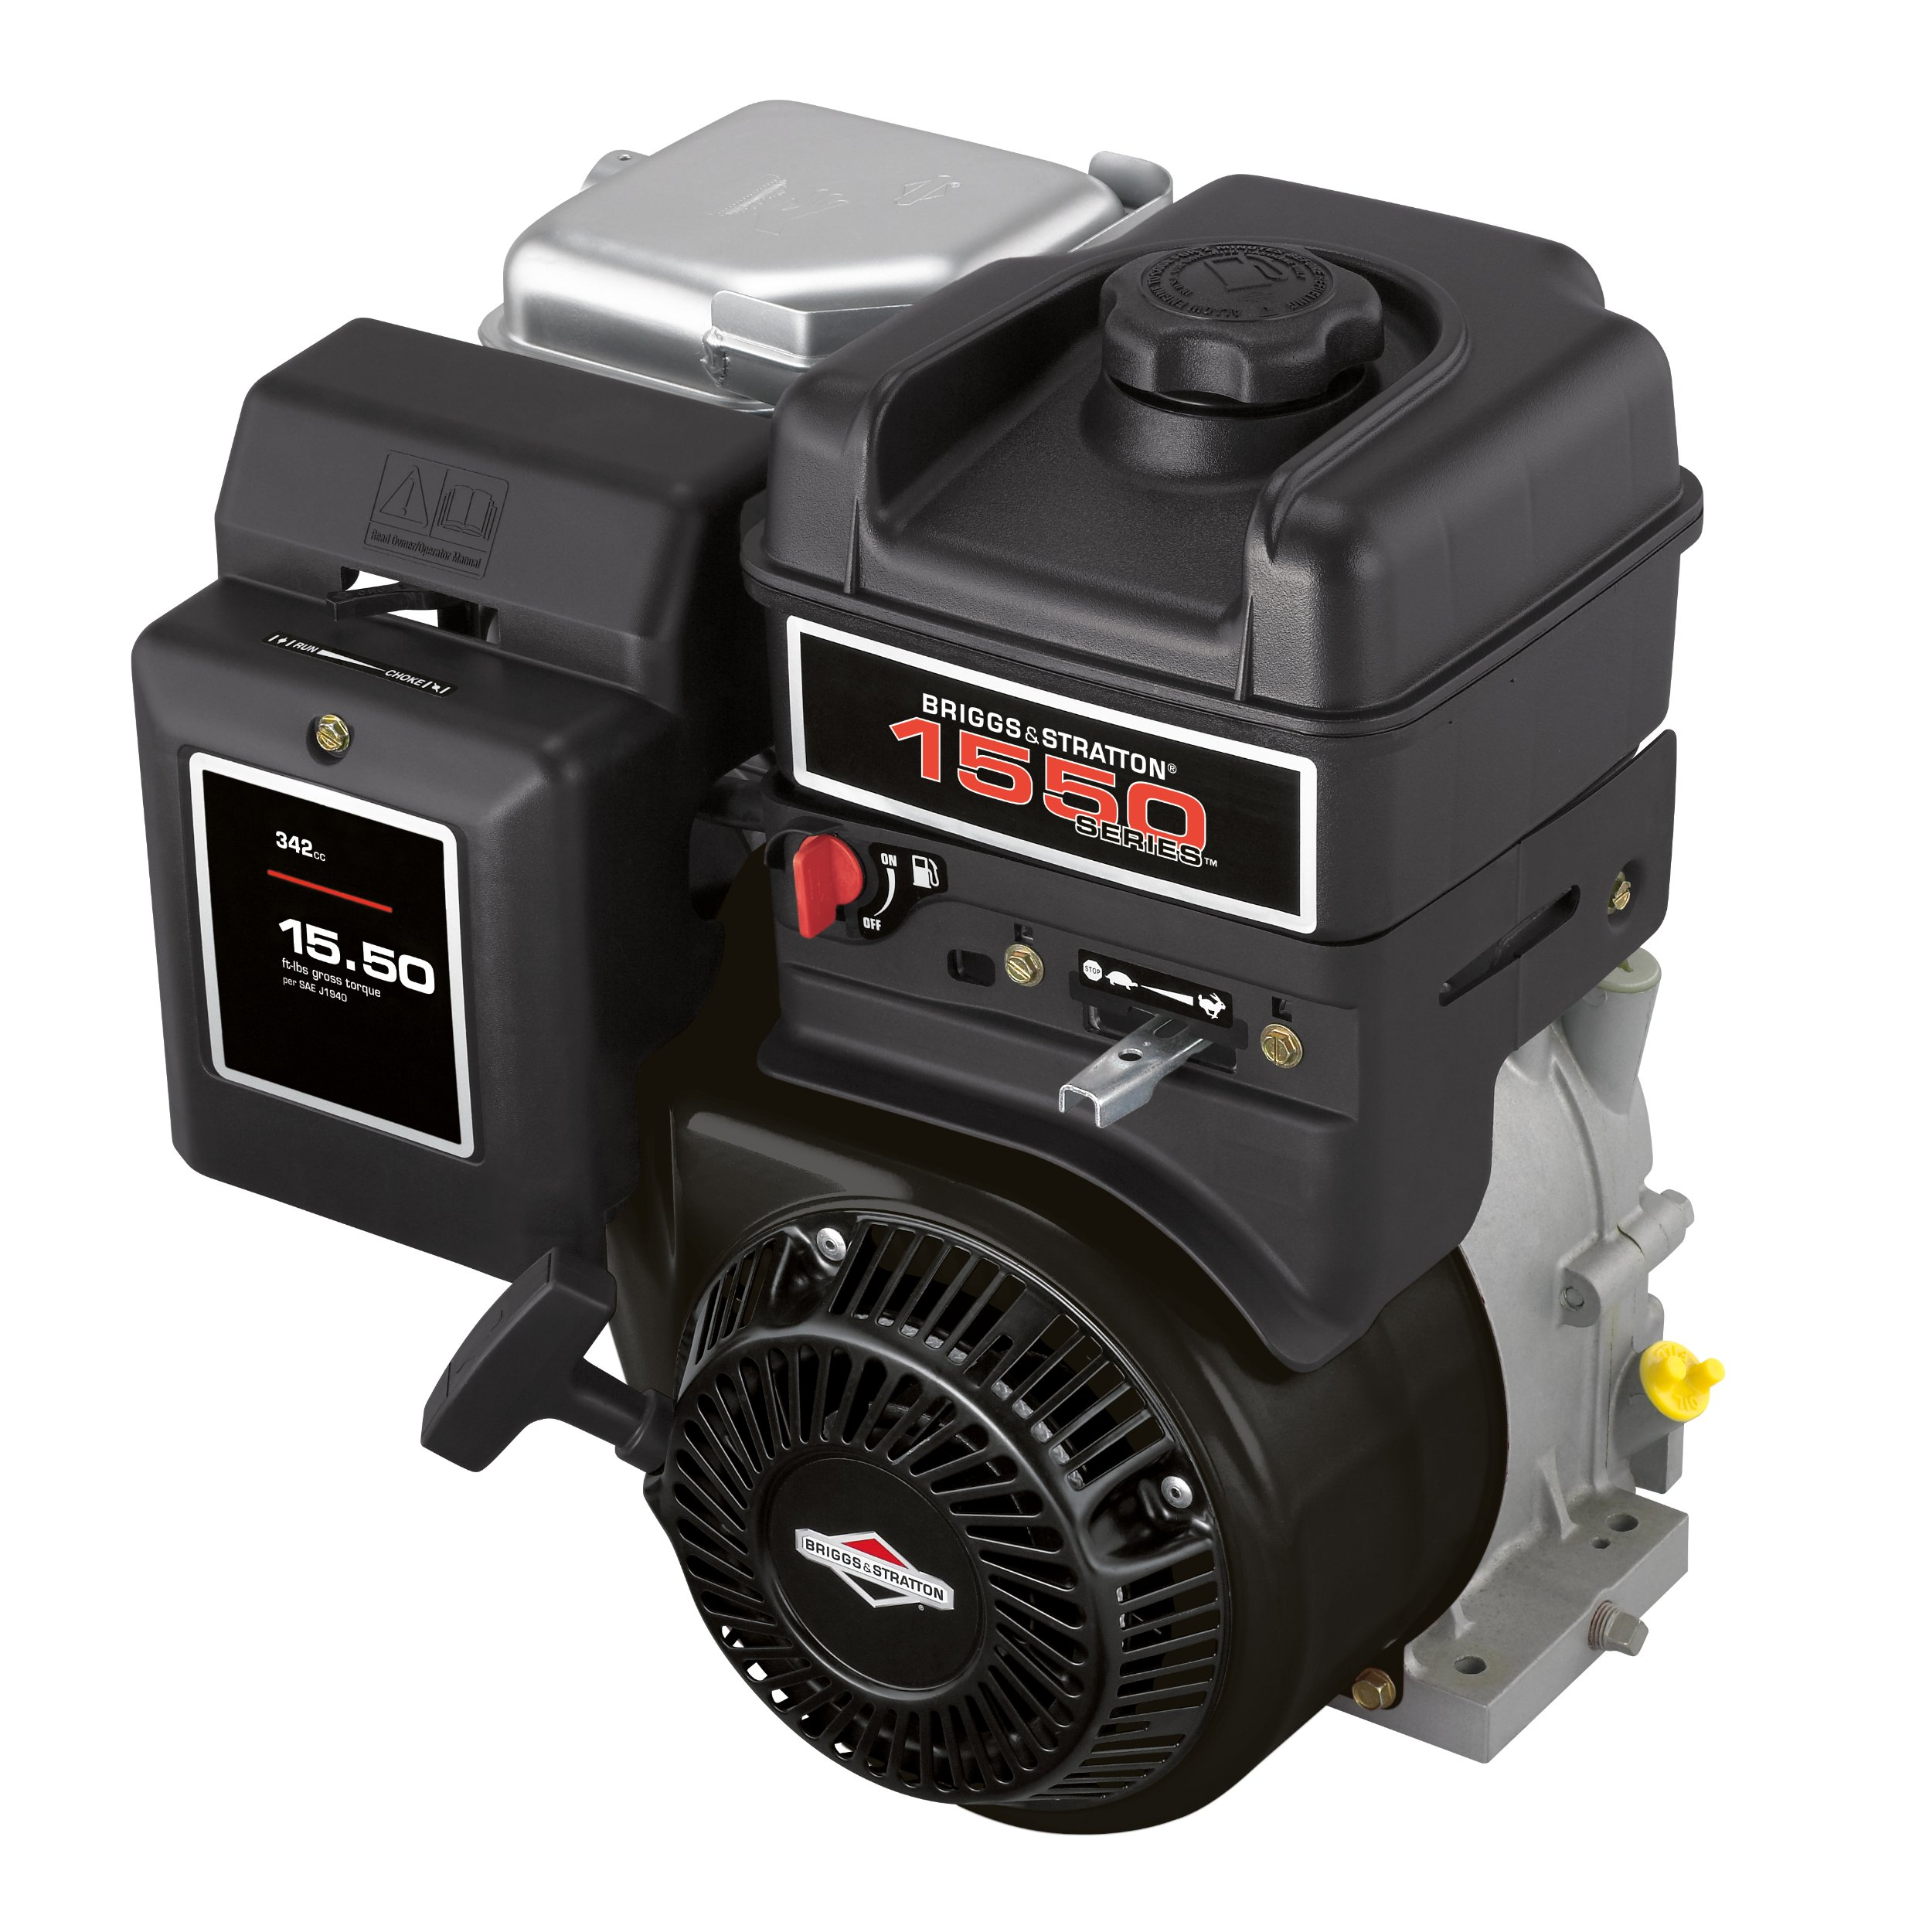 Get Quotations · Briggs & Stratton 210332-0535-B1 342cc 15.50 Gross Torque  Engine With A Threaded